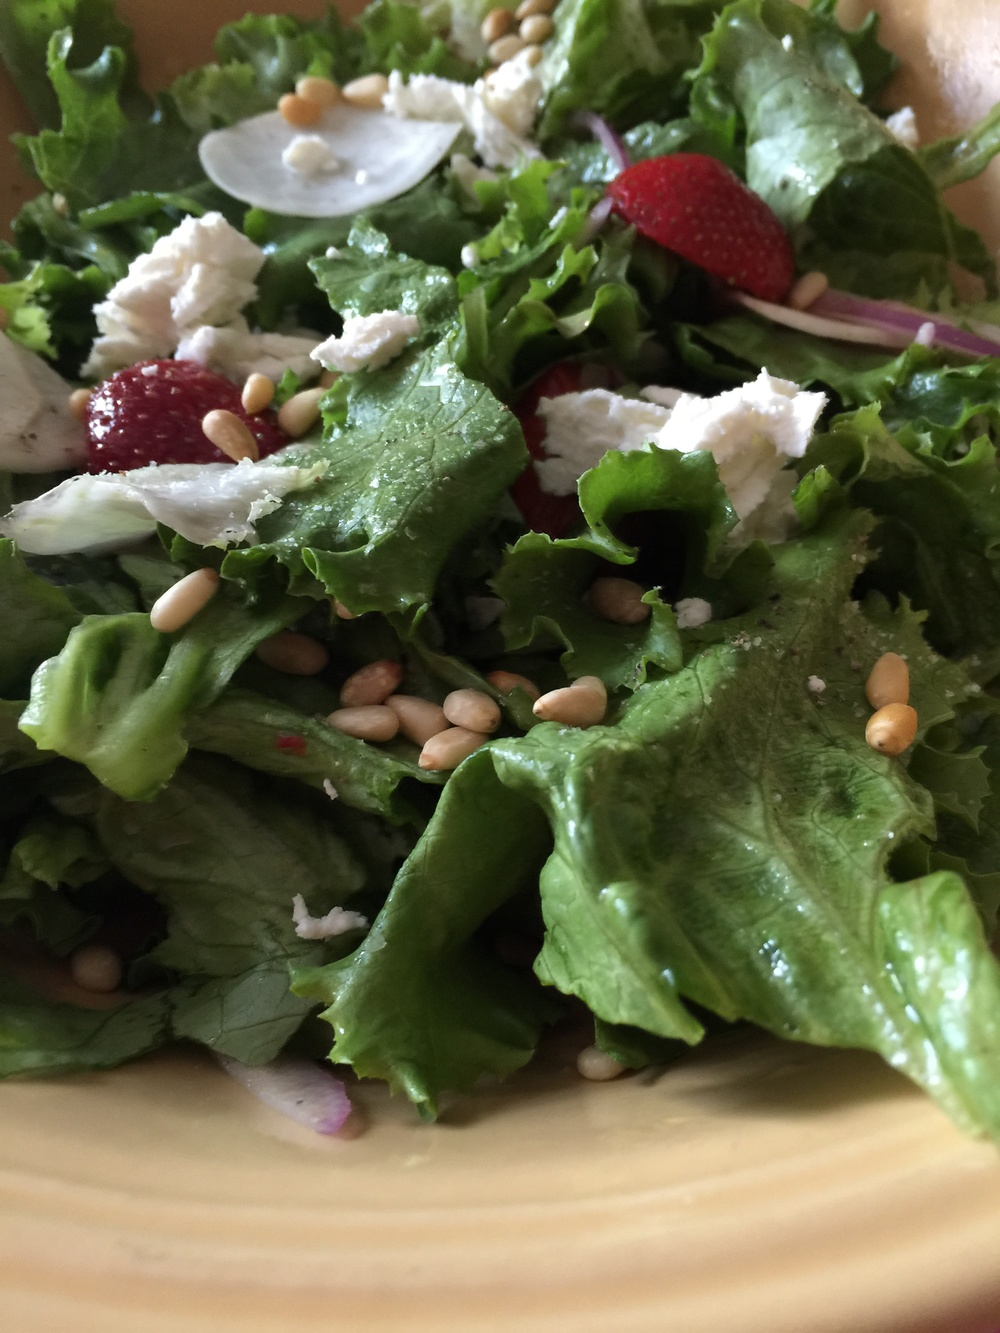 Salad with Curly leaflettuce, Hakurei turnips, strawberries, red onion, pine nuts, goat cheese